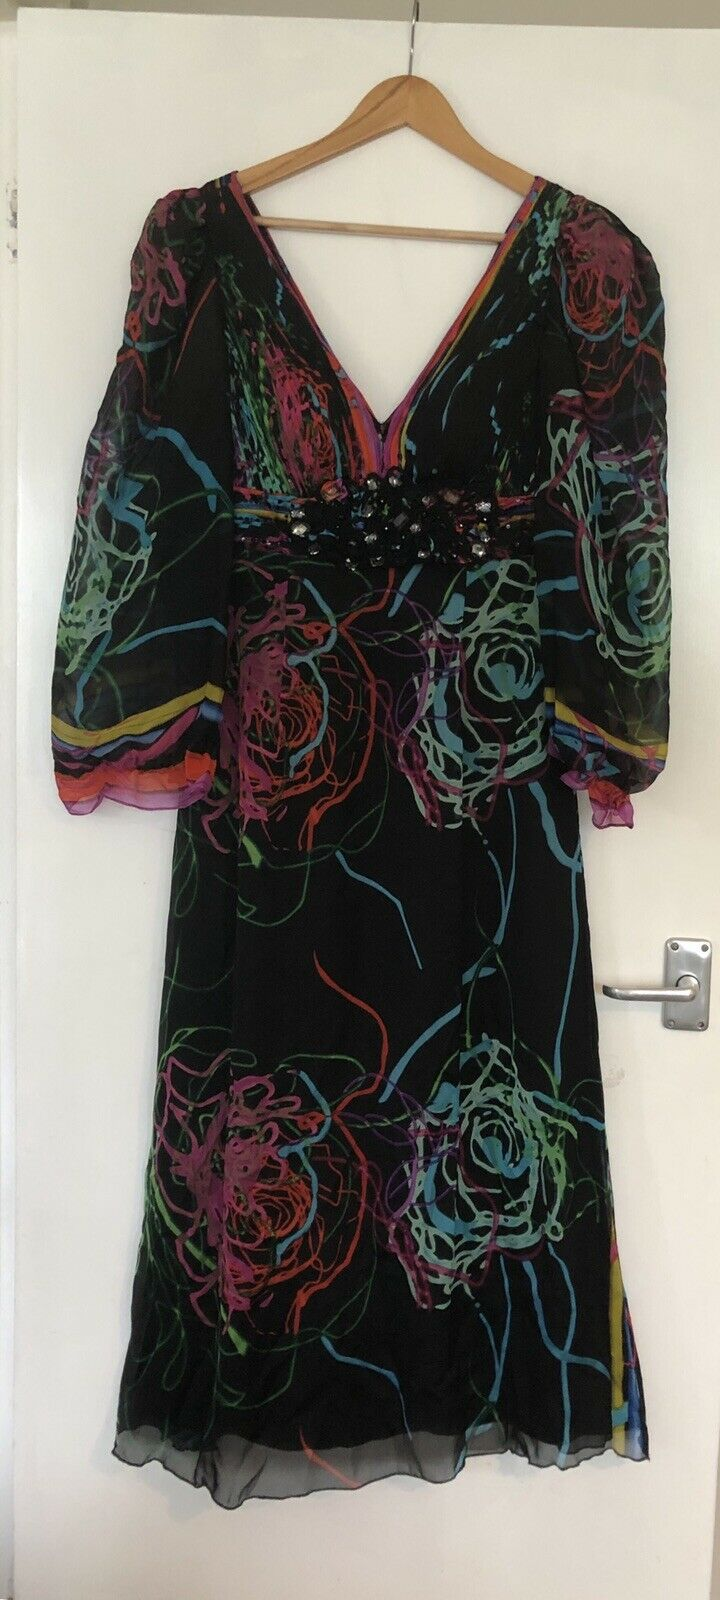 Alberto Makali New York Couture Silk Dress Showstopper Sleeves Sleeves Sleeves Size 12 Ball Drag af9ecb